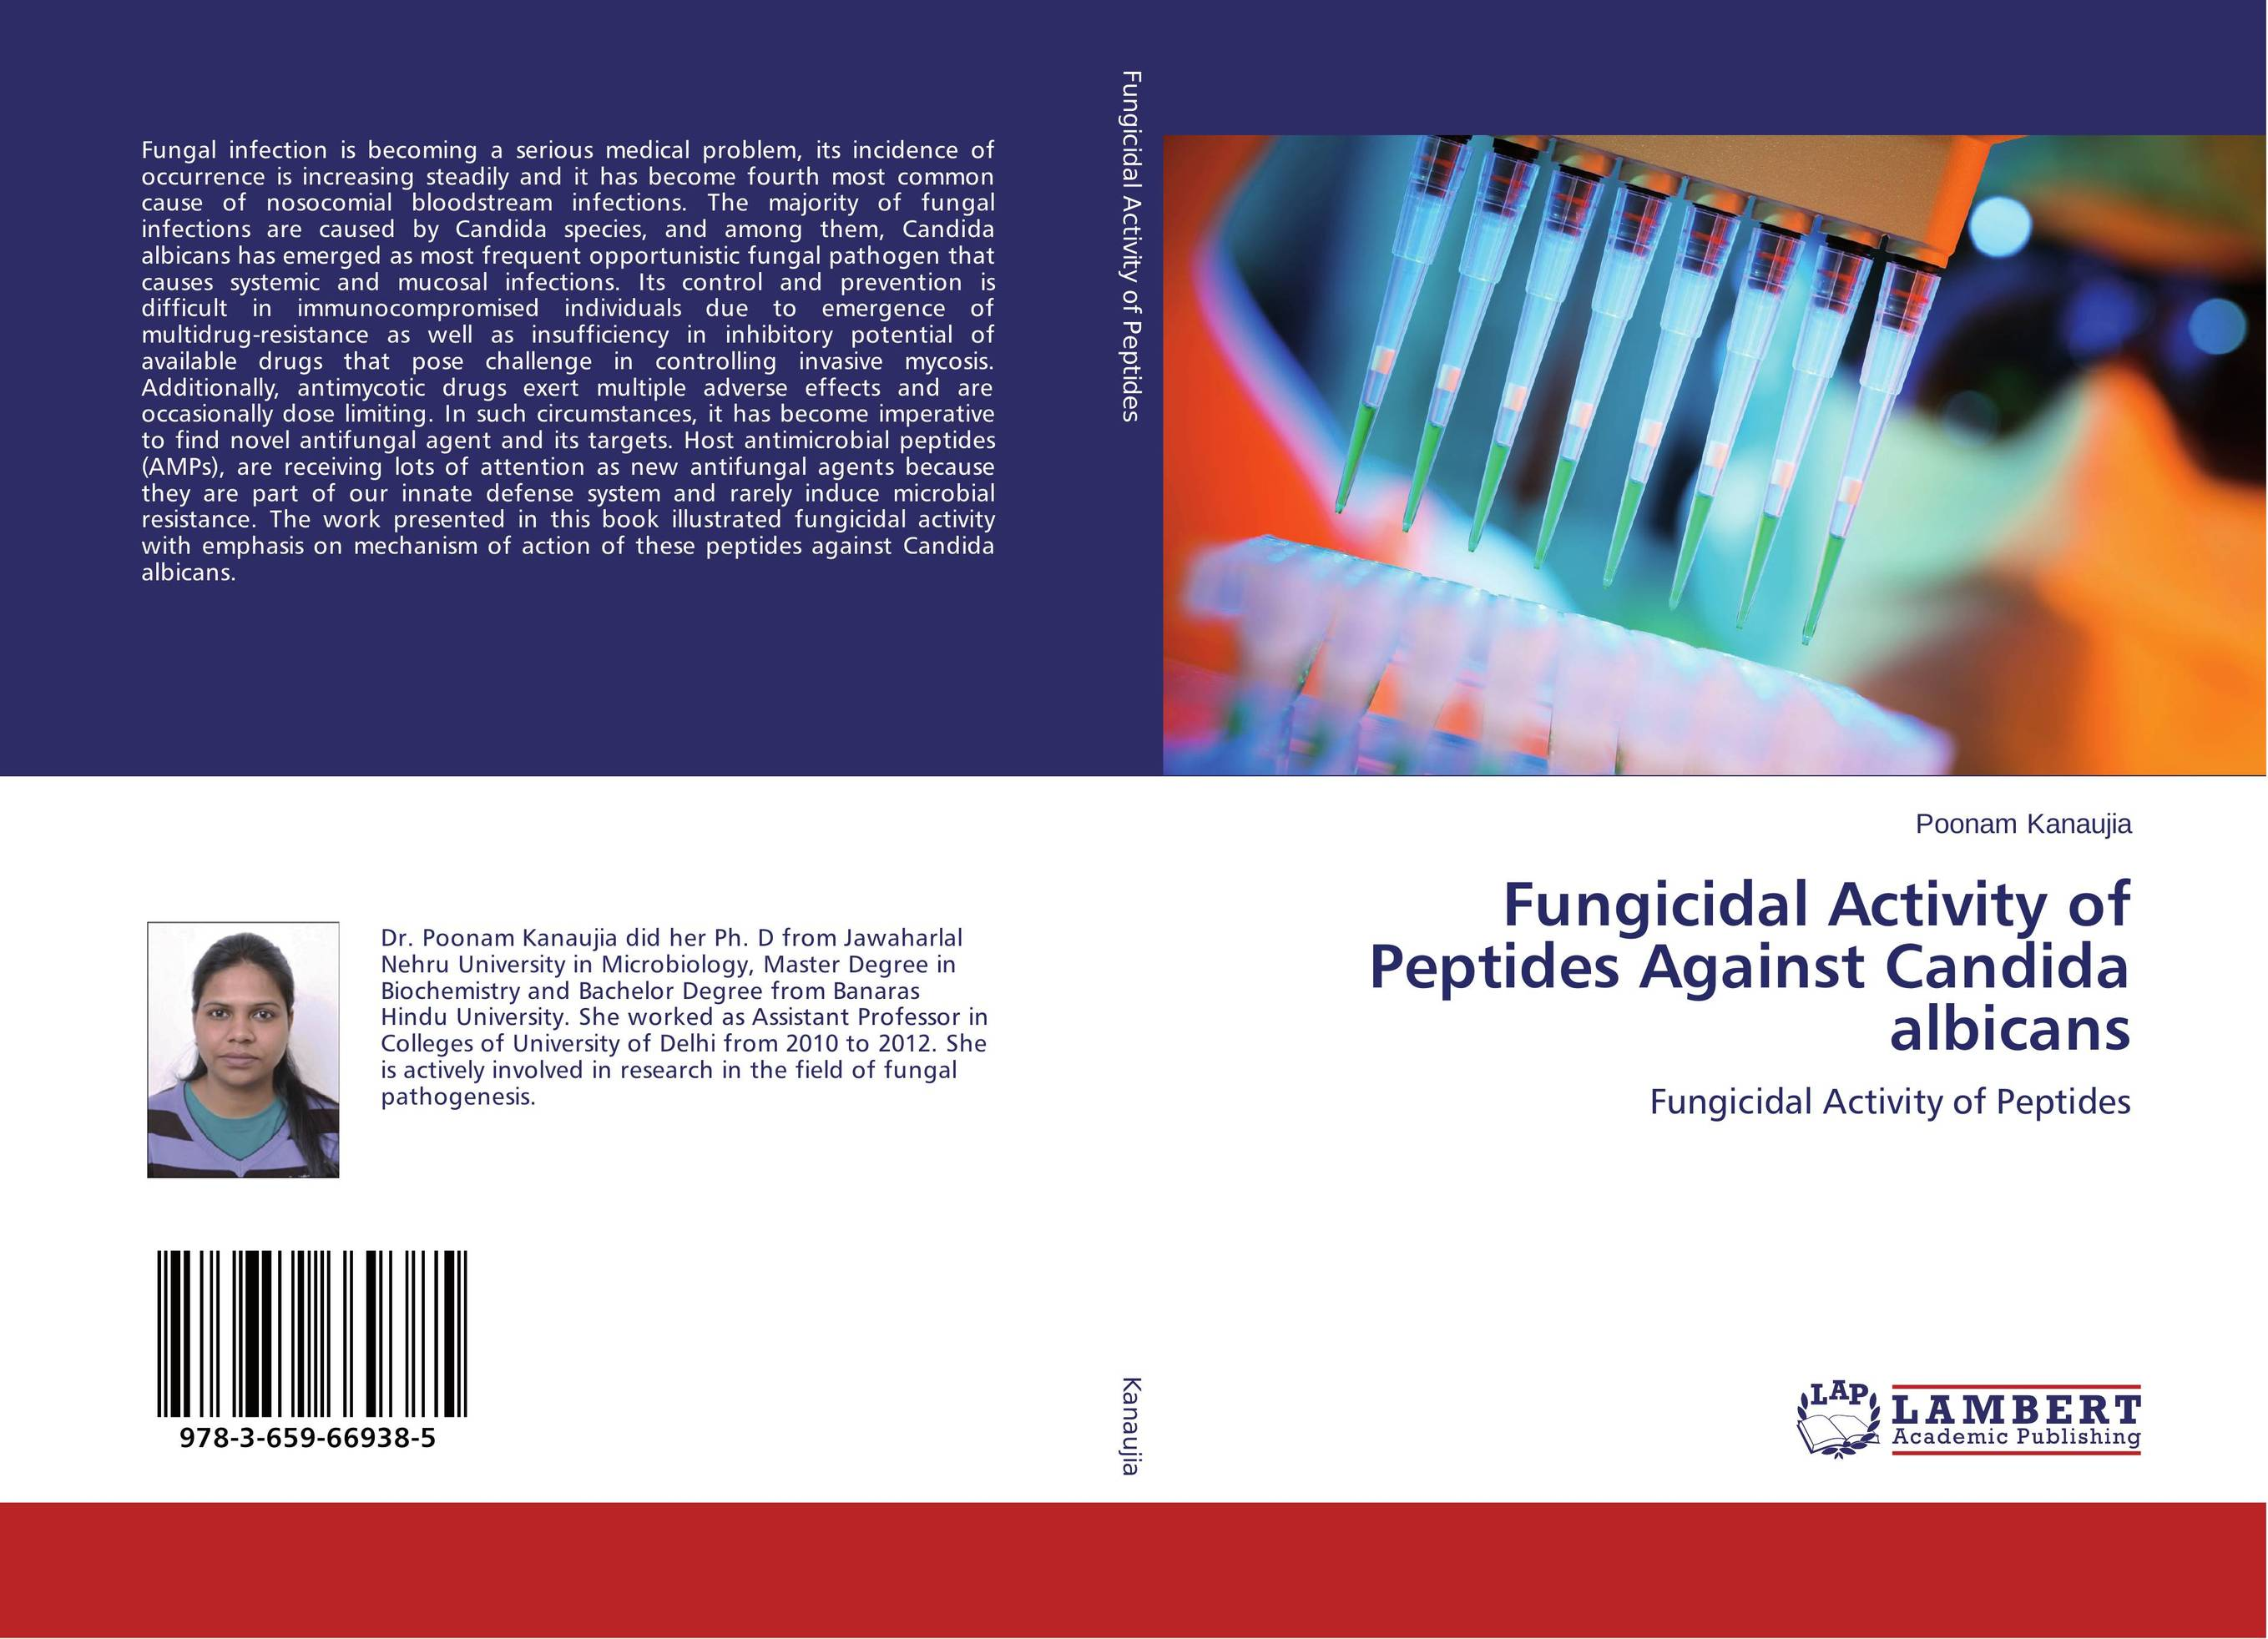 Fungicidal Activity of Peptides Against Candida albicans saif hameed regulation of multidrug resistance in human pathogen candida albicans